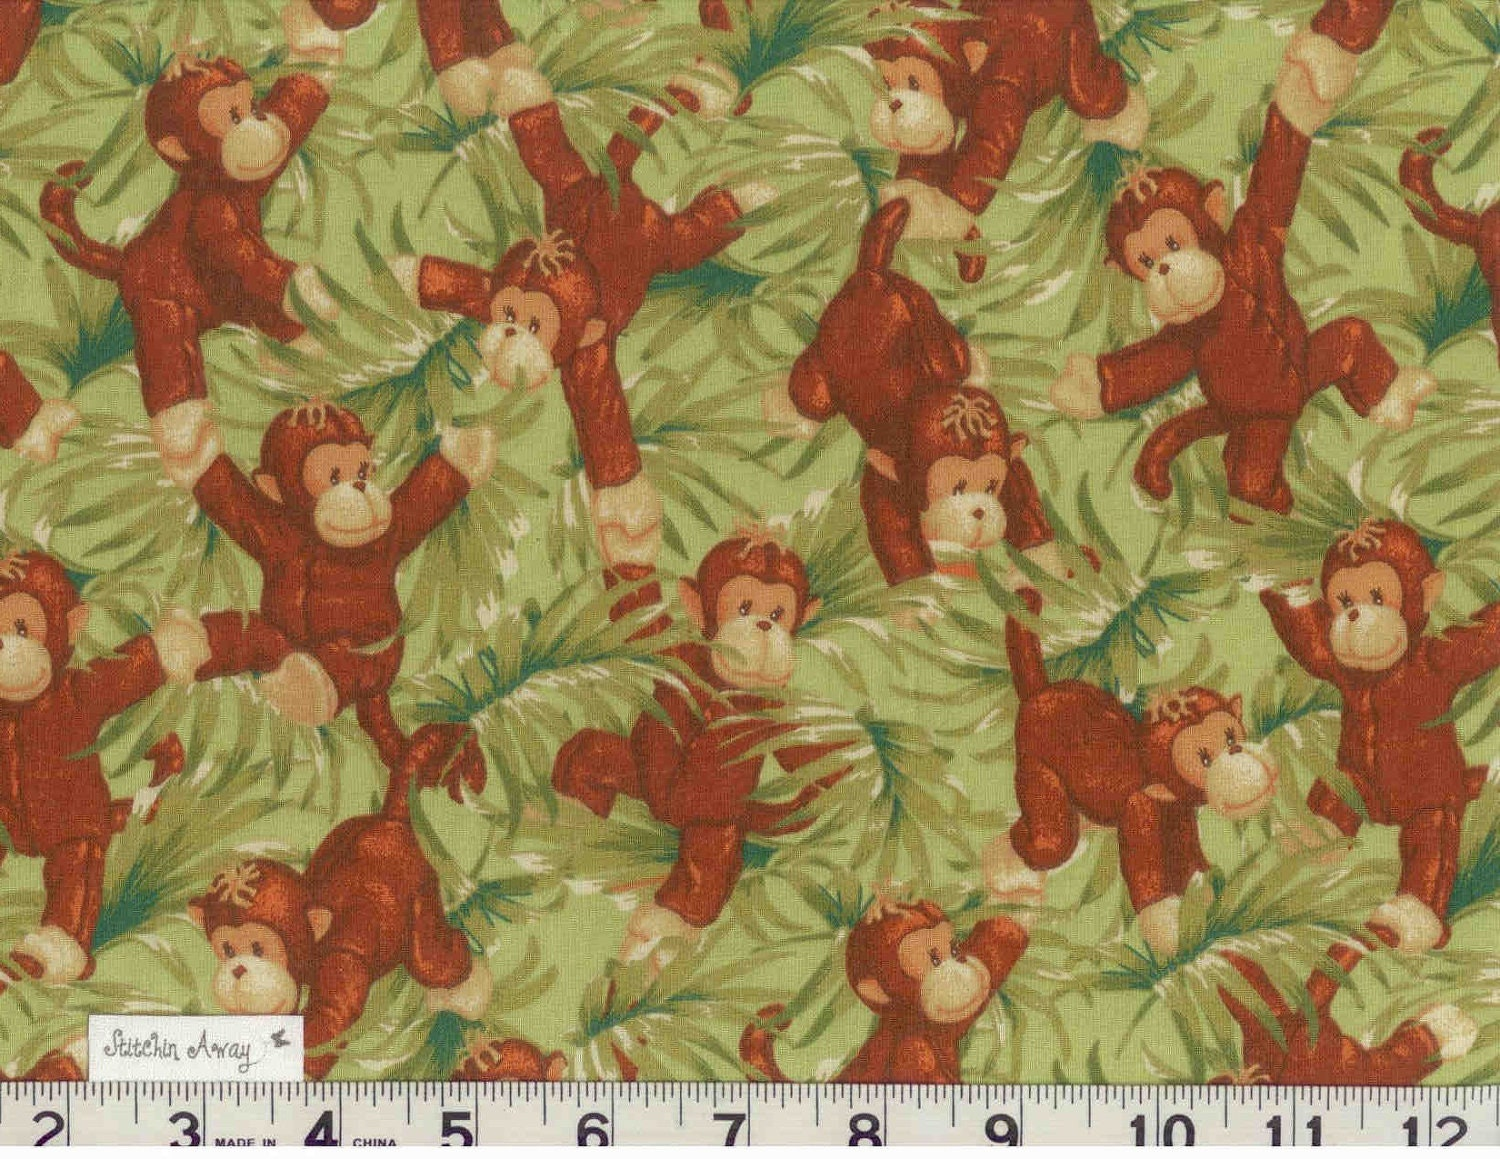 Jungle baby fabric prints bing images for Baby monkey fabric prints